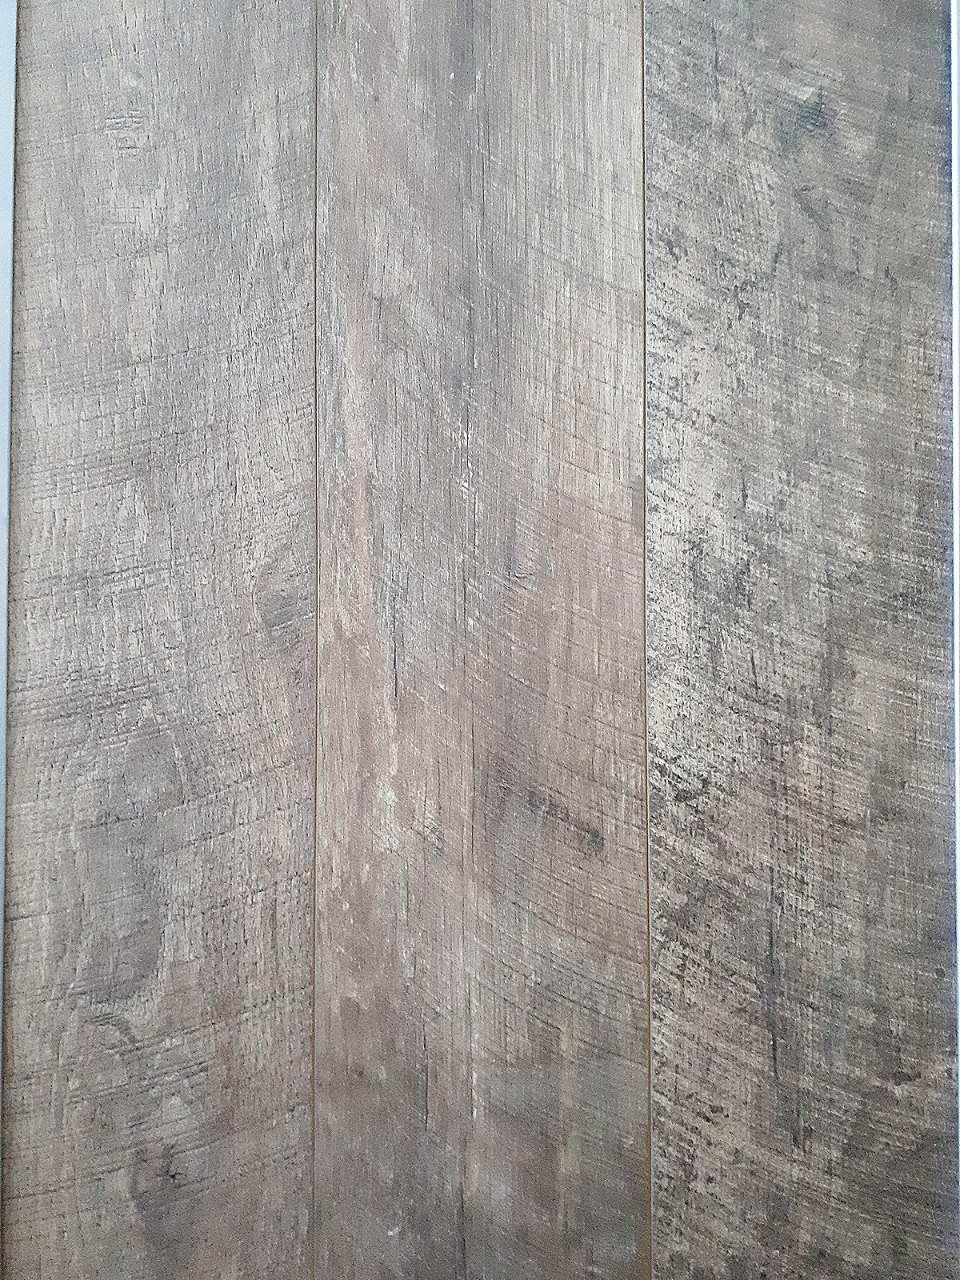 ESK 061 12 33 4V Country Barnwood